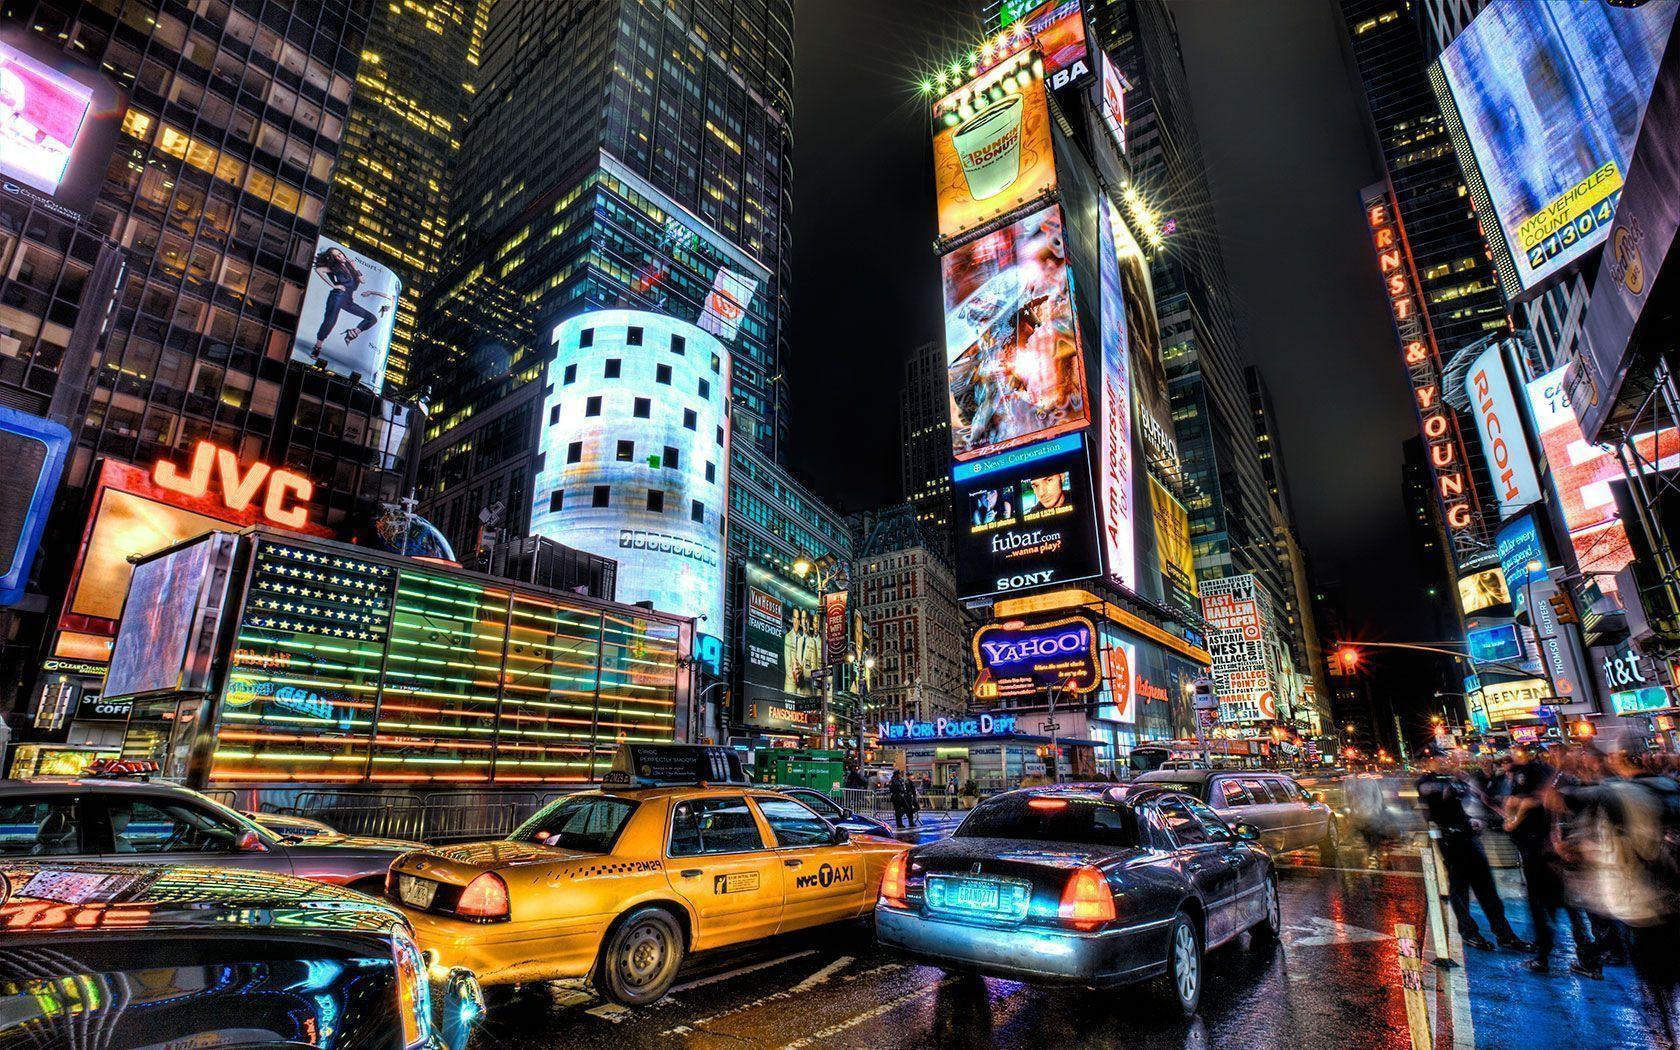 Times Square Night - Cities Wallpapers